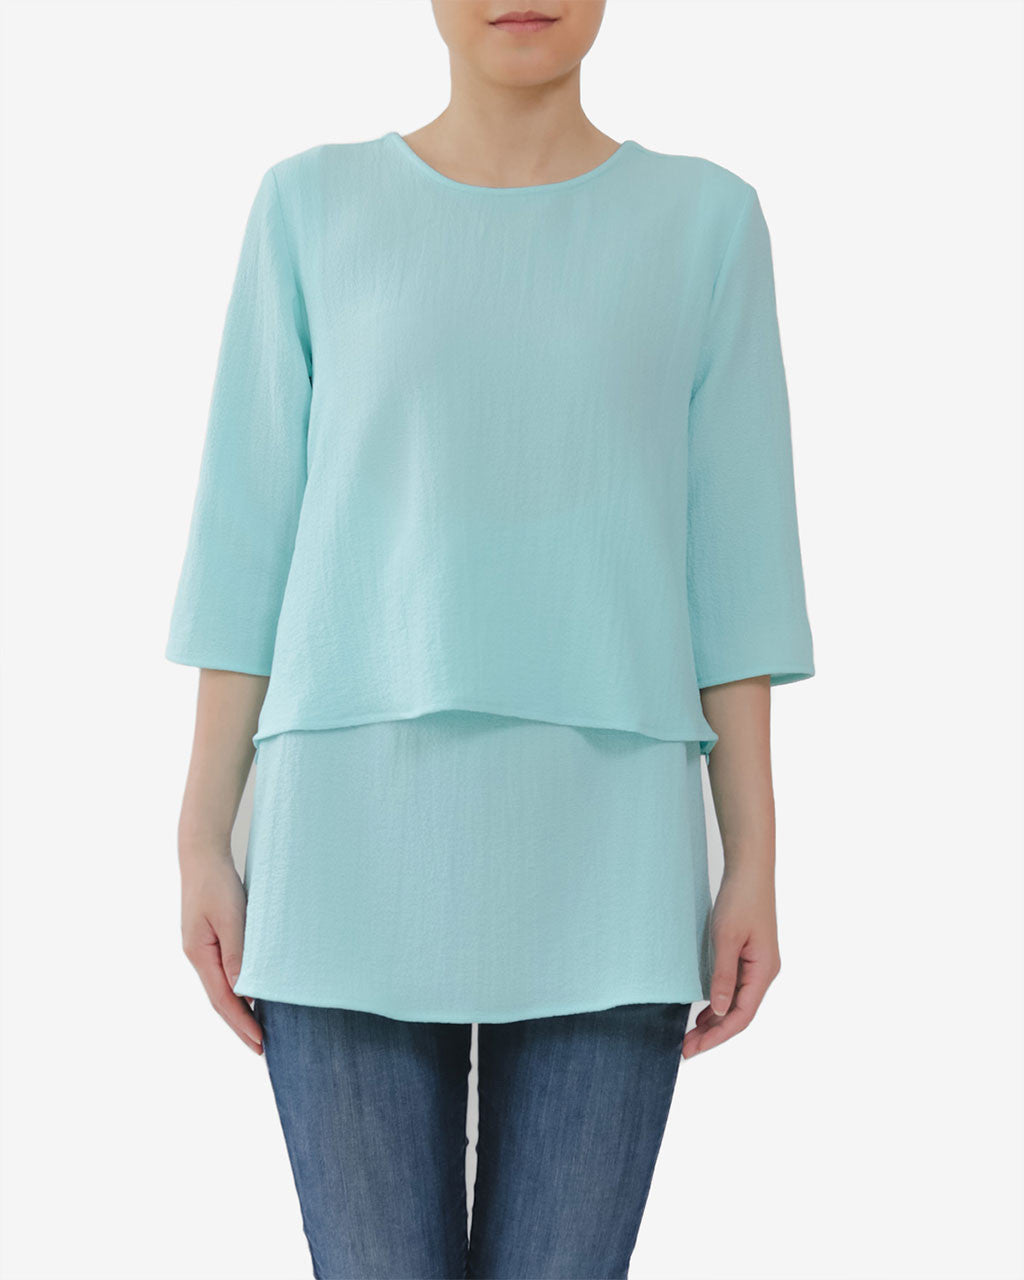 Beatrice Nursing Top